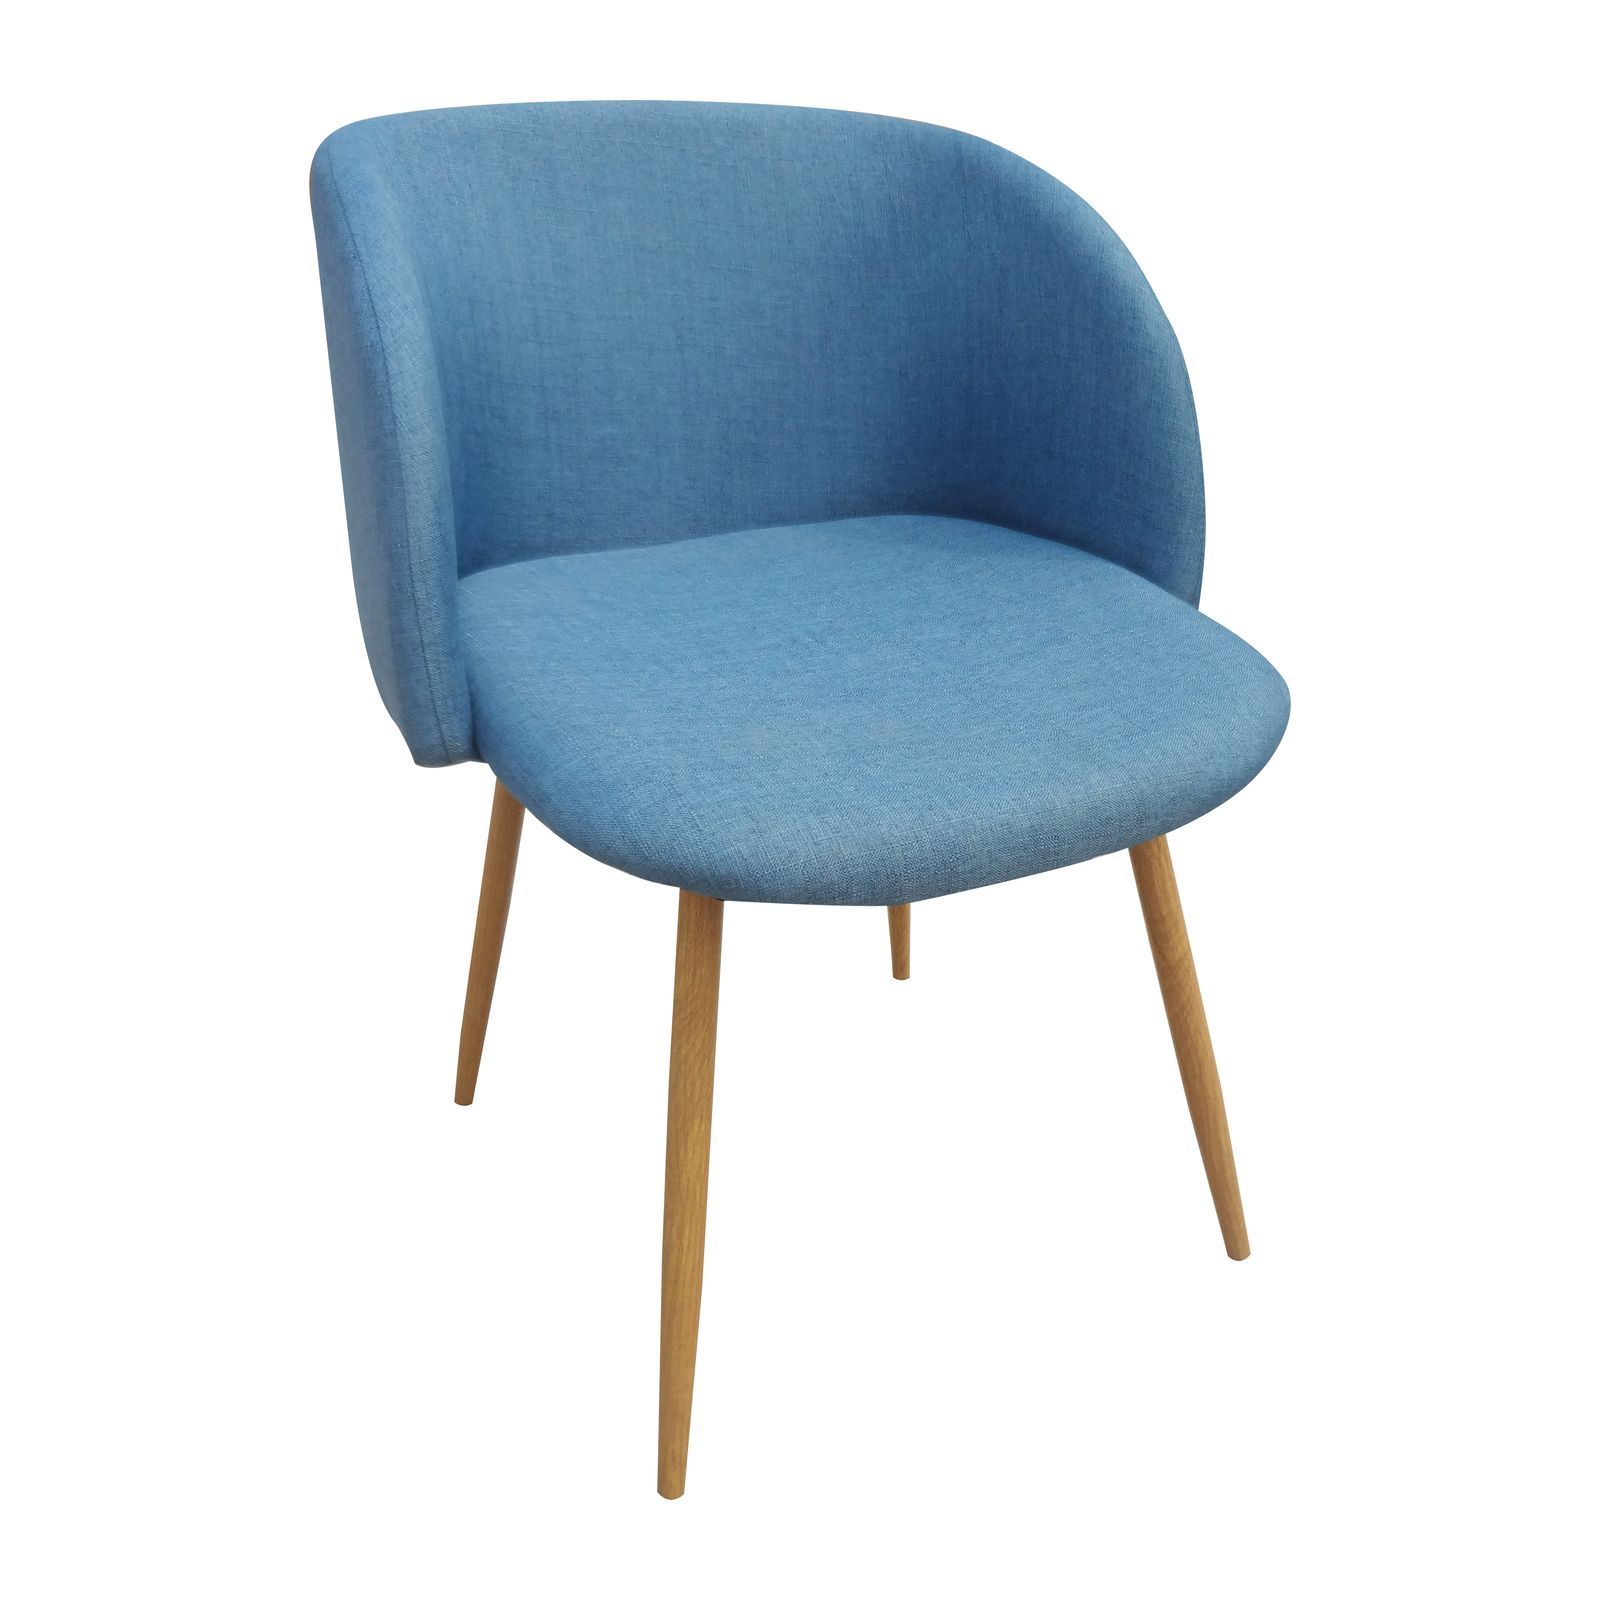 Potiron Oslo Lot De 2 Chaises Bleu BrandAlley